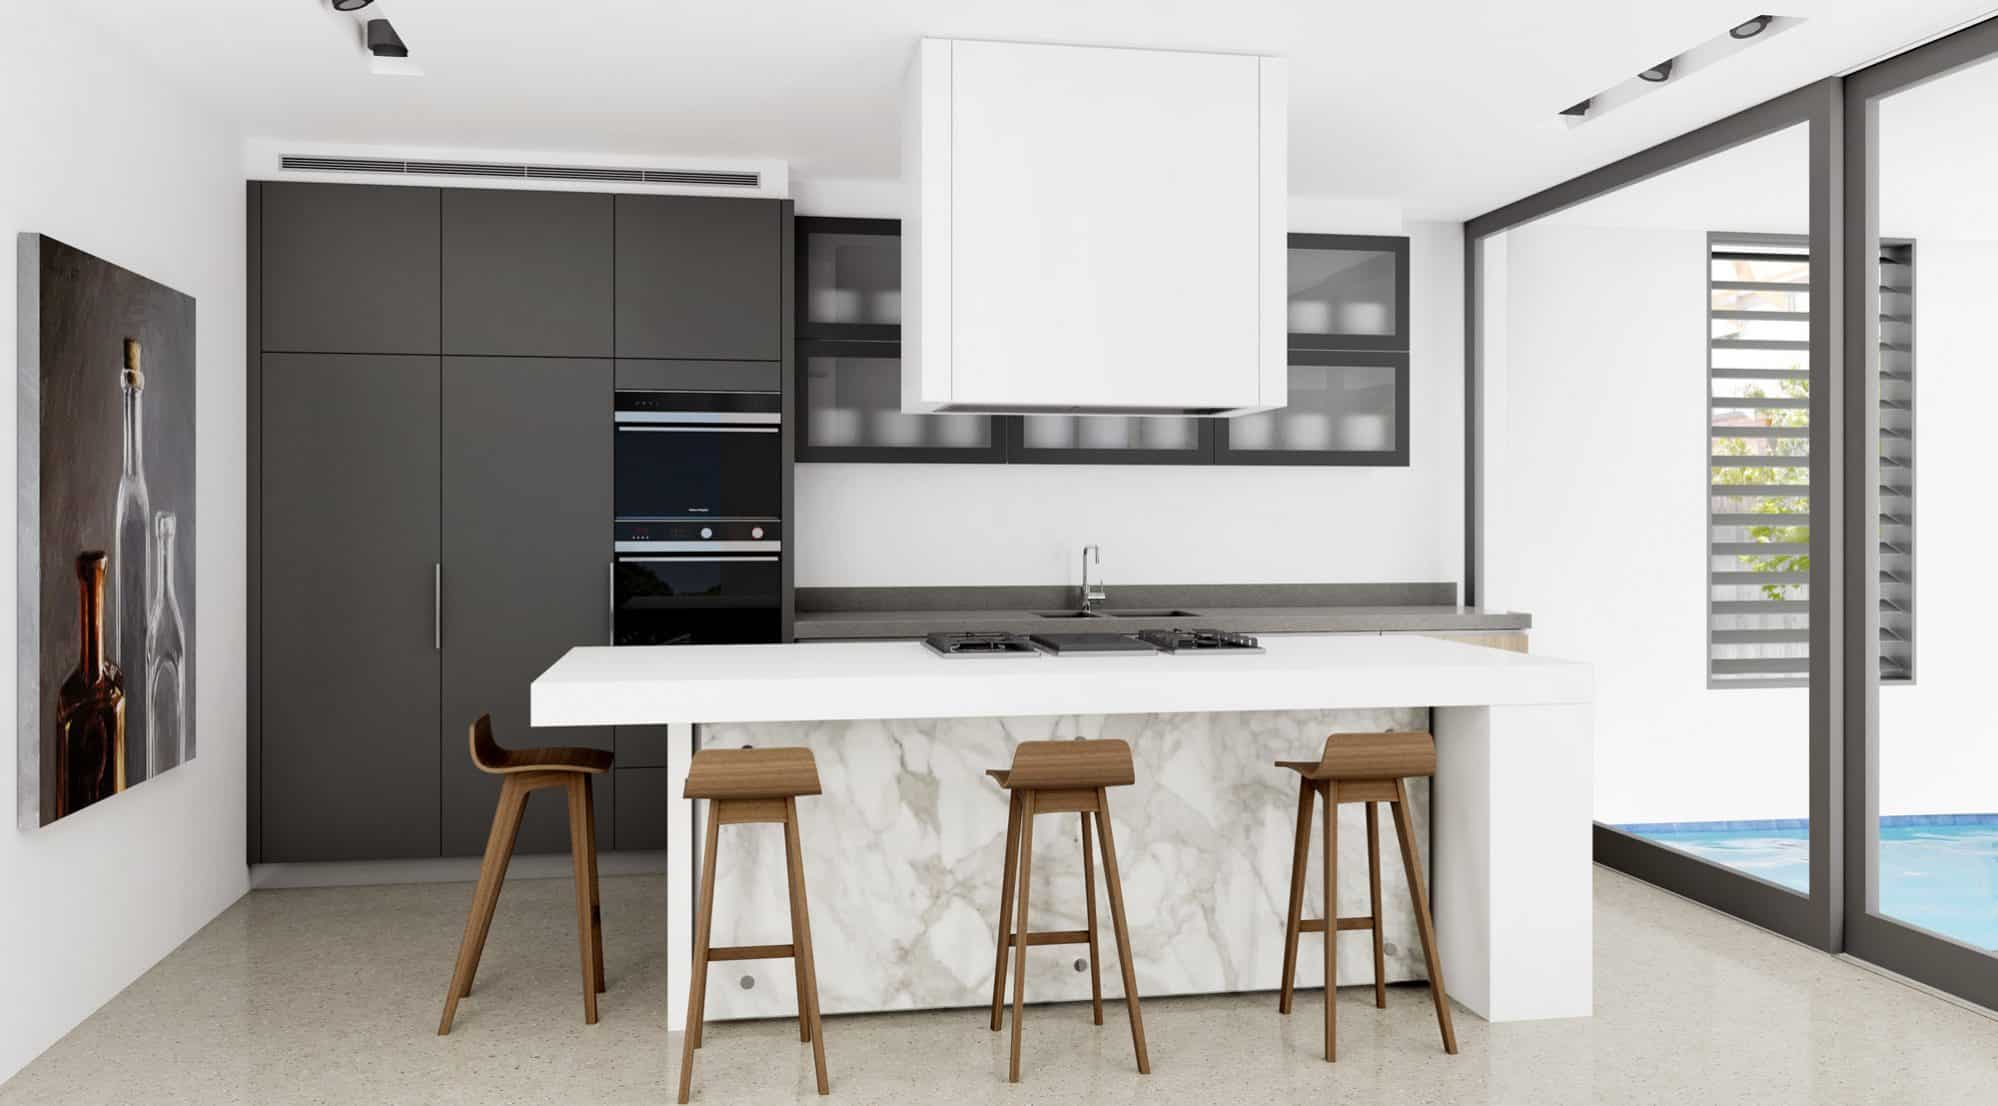 Grey kitchen with white cooktop island